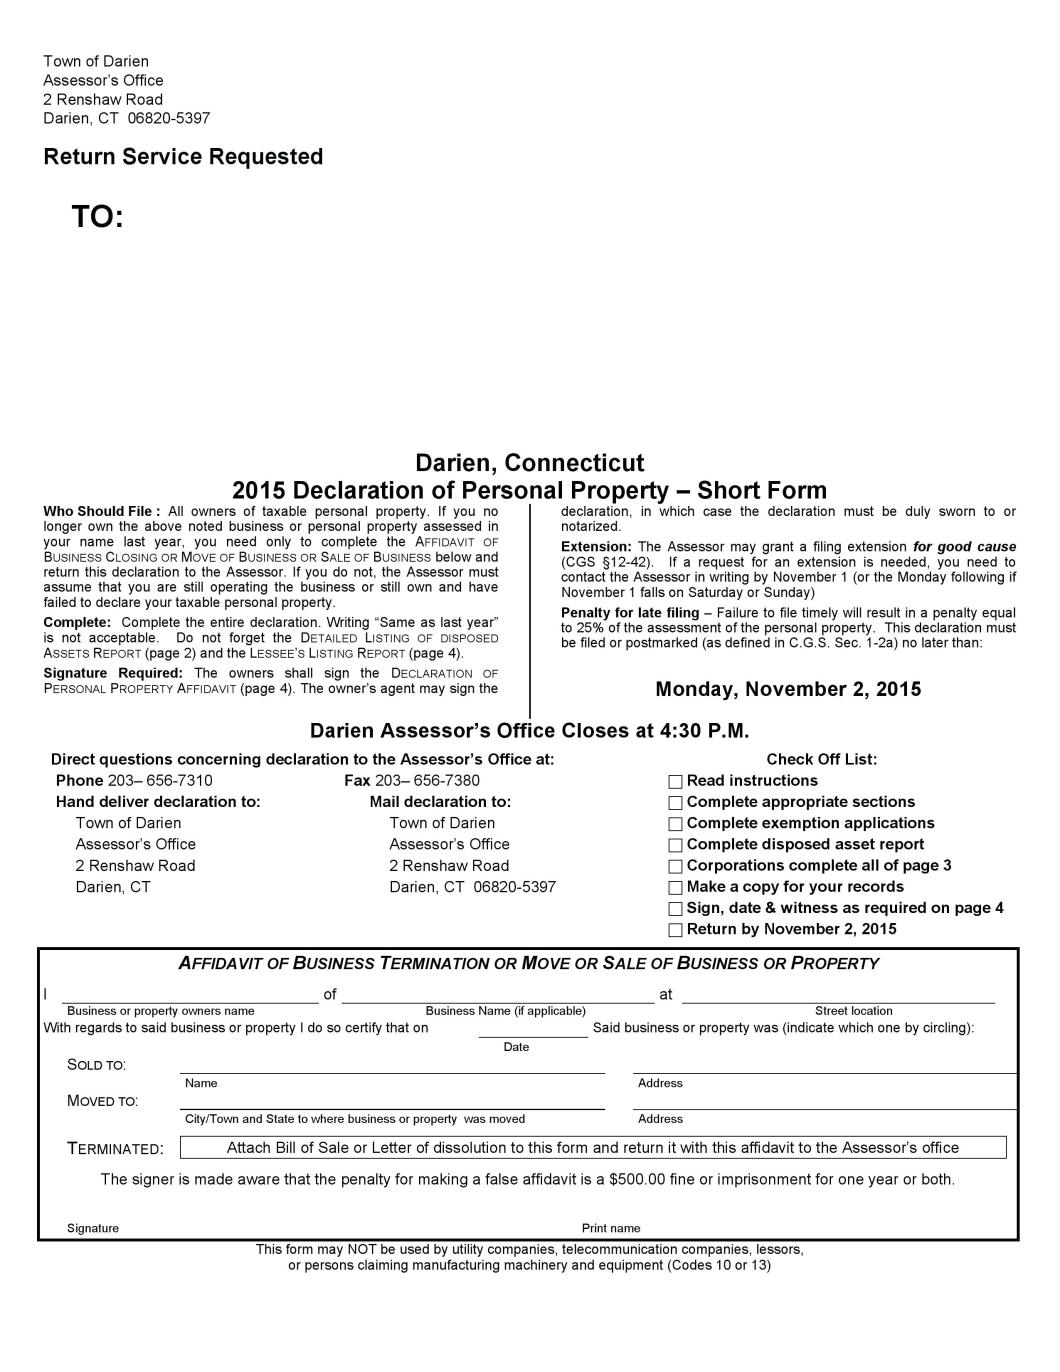 car repossession letter template example-Vehicle Repossession Letter Template 18-h